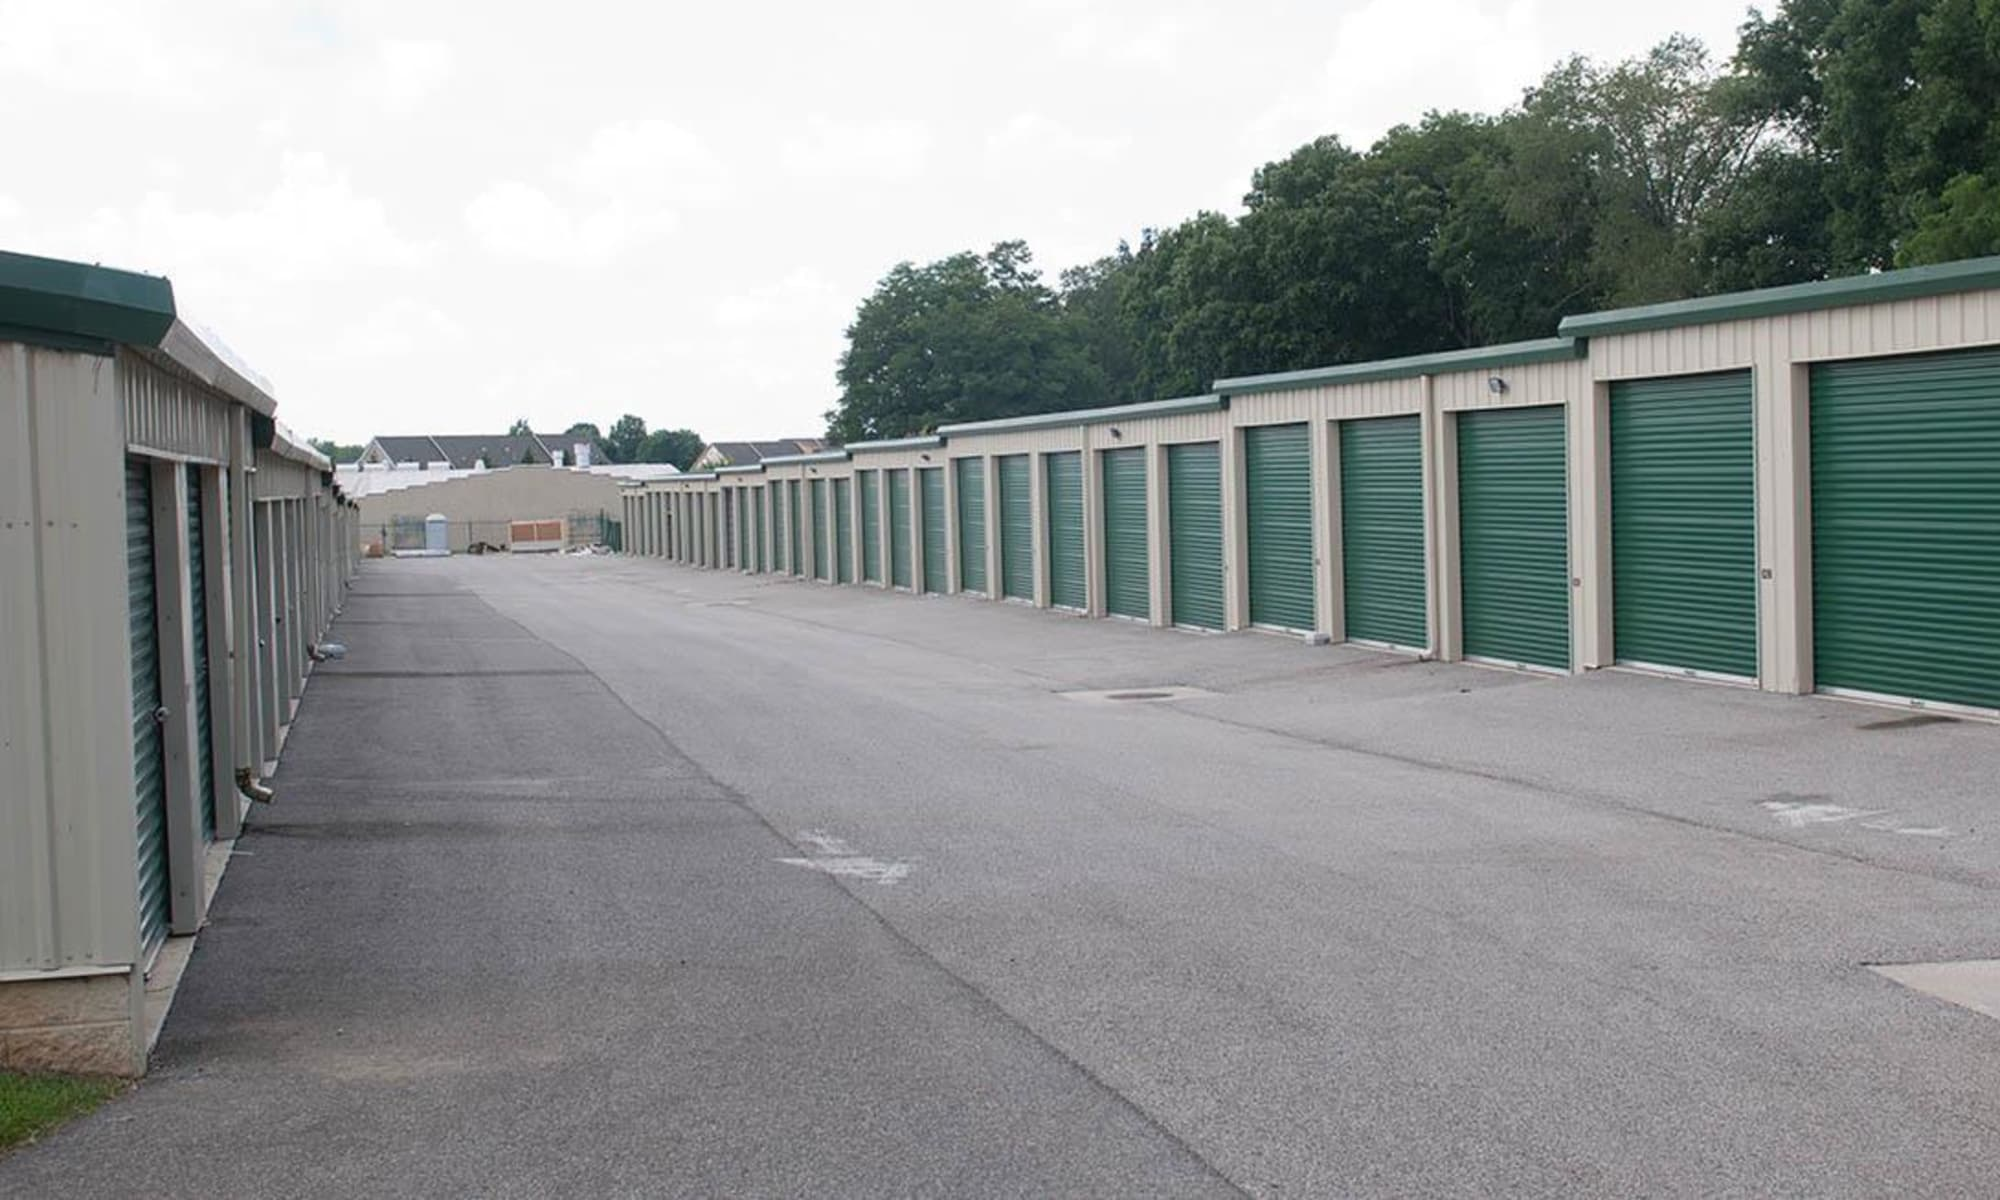 Wide driveways provide convenient access to outdoor units at Virginia Varsity Storage in Christiansburg, Virginia